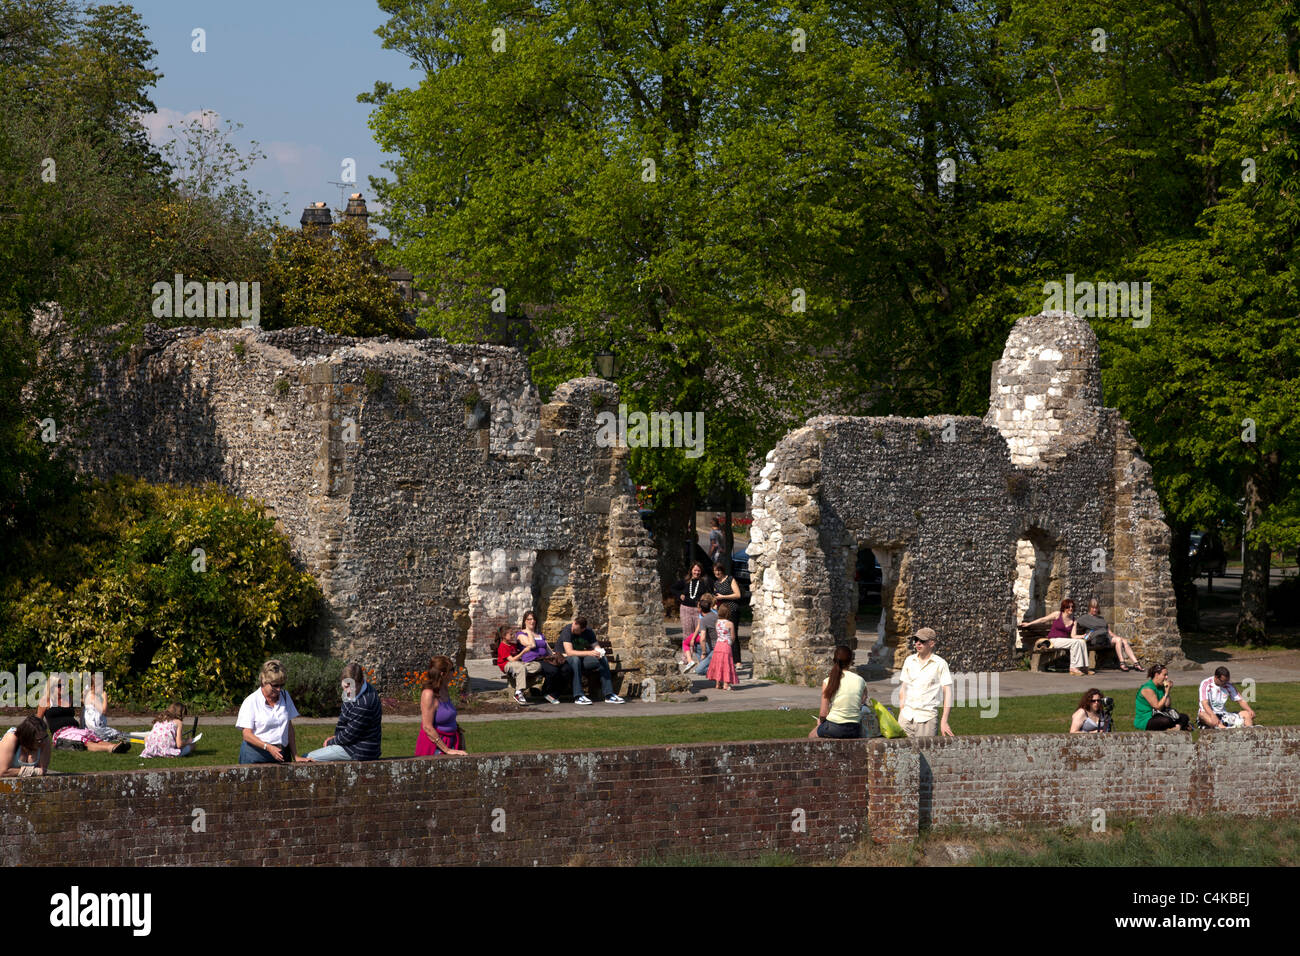 the ruin of Blackfriars Dominican Priory - Stock Image